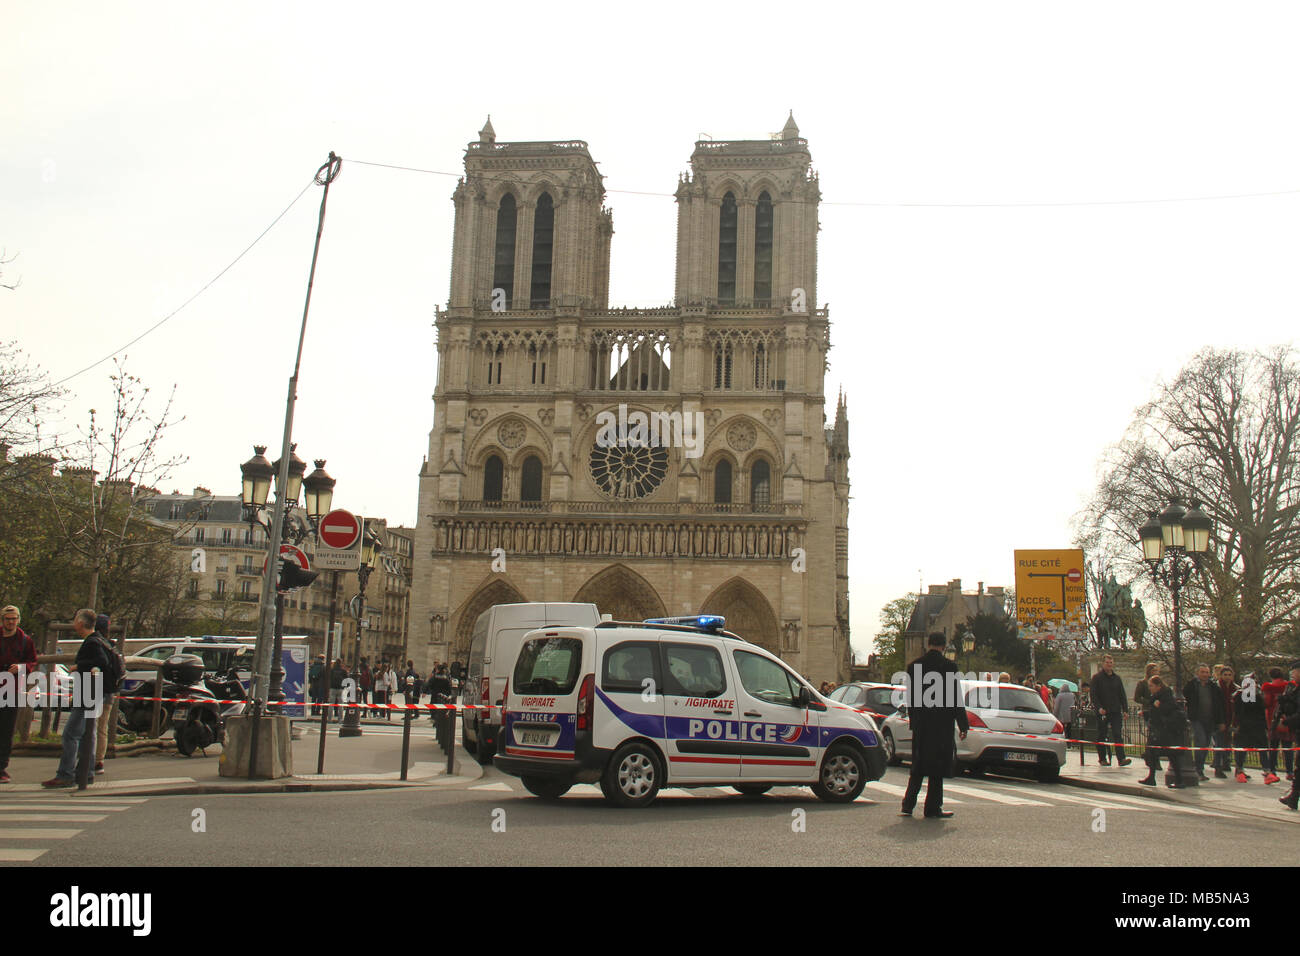 Paris, France -  03 April 2018. A Police car blocks a road leading to the Notre Dame after the area was sealed off due to a security alert on 3 April. The security alerts come a week after the shooting of police officer Arnaud Beltrame in Southern France.  @ David Mbiyu/Alamy Live News - Stock Image